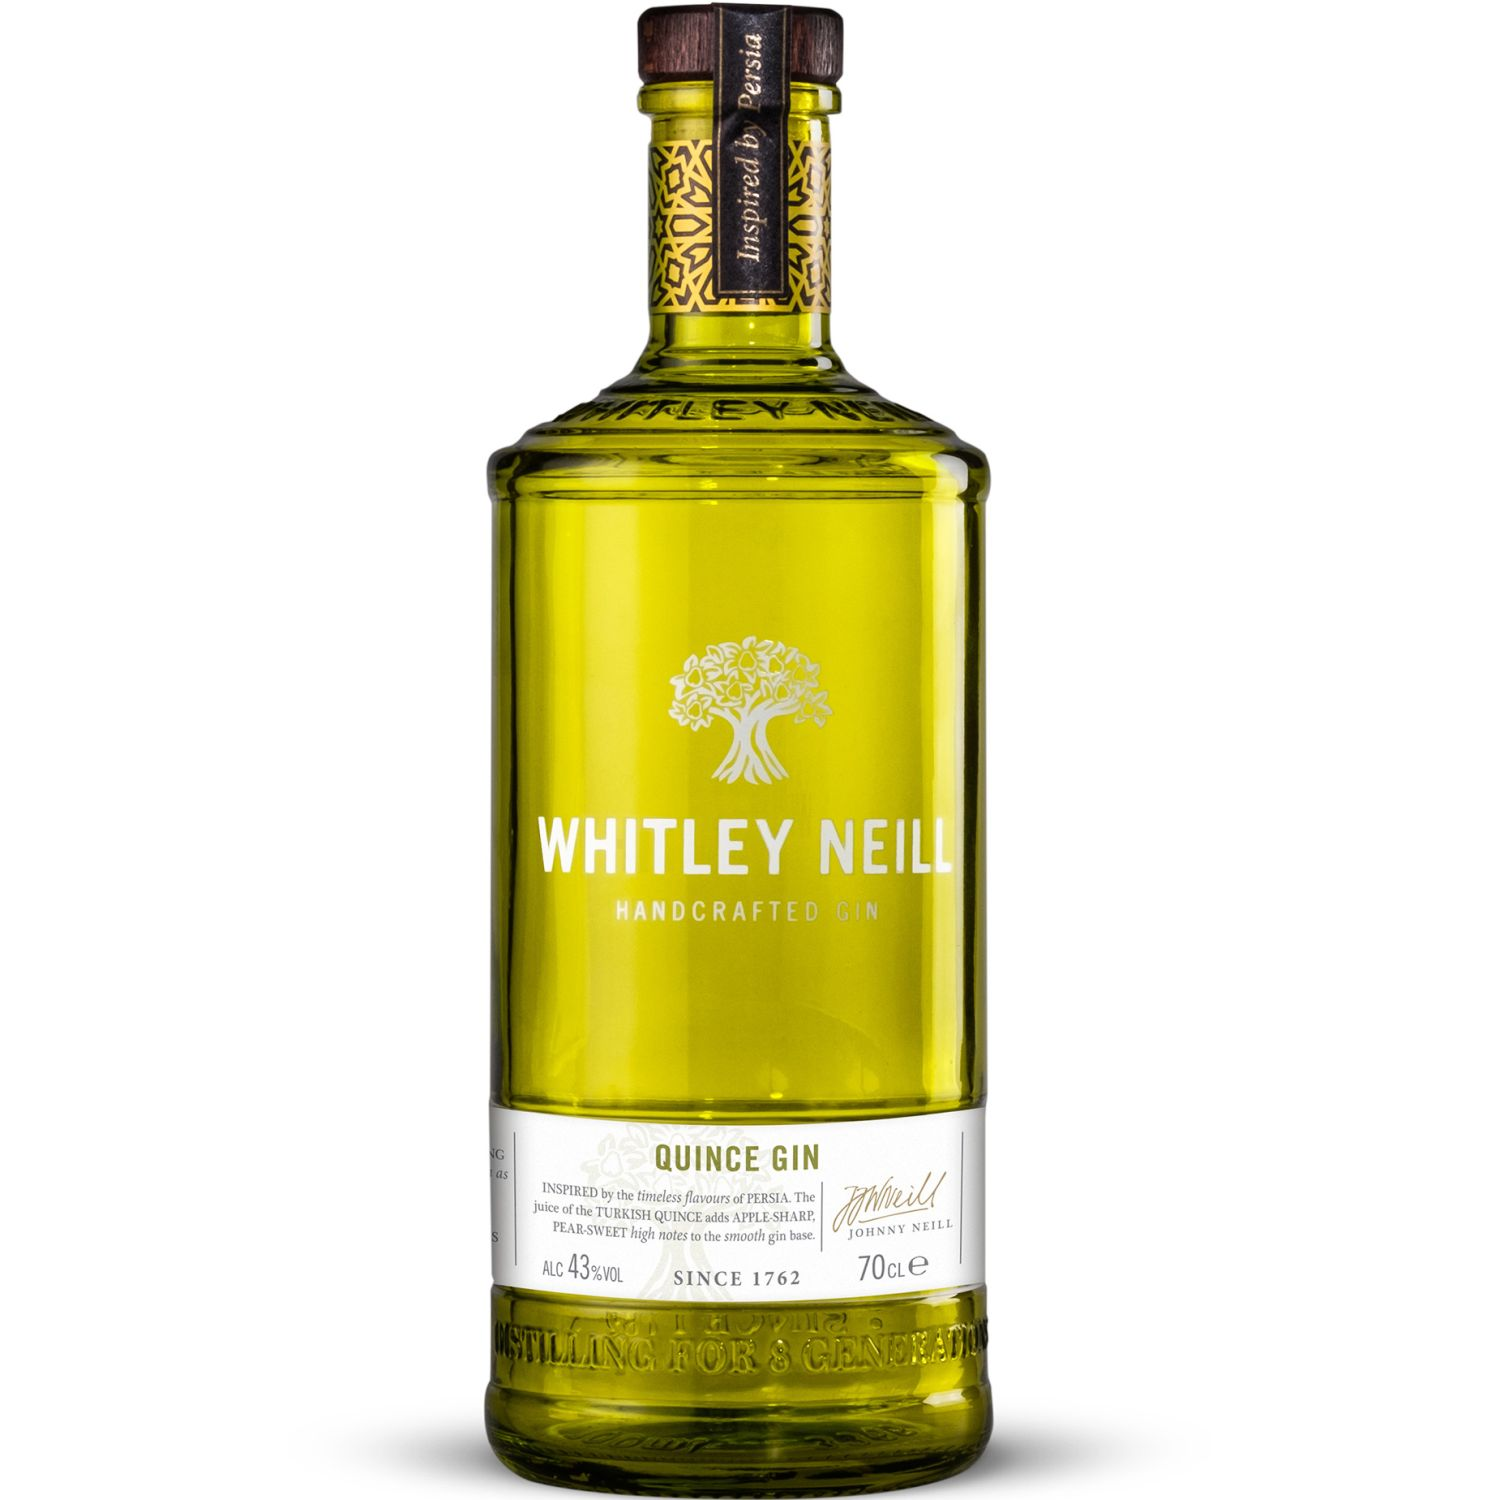 Whitley Neill Whitley Neill Quince Gin700 Ml SIN COLOR Gin